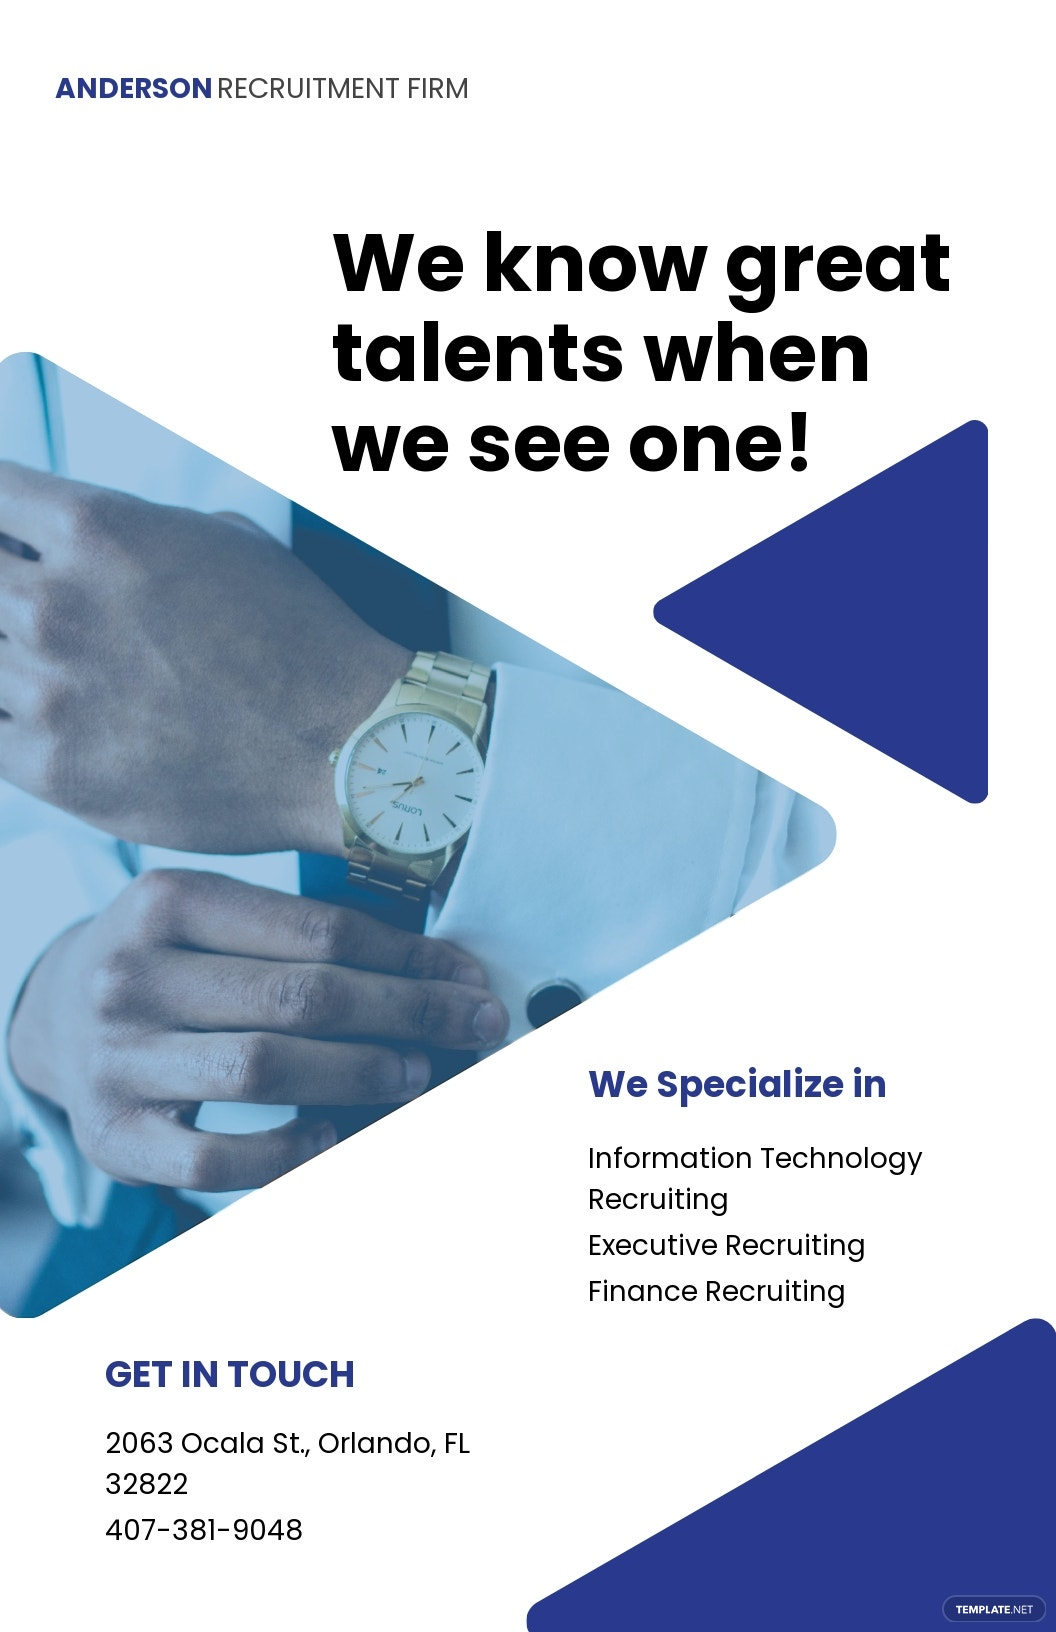 Recruitment Firm Poster Template.jpe